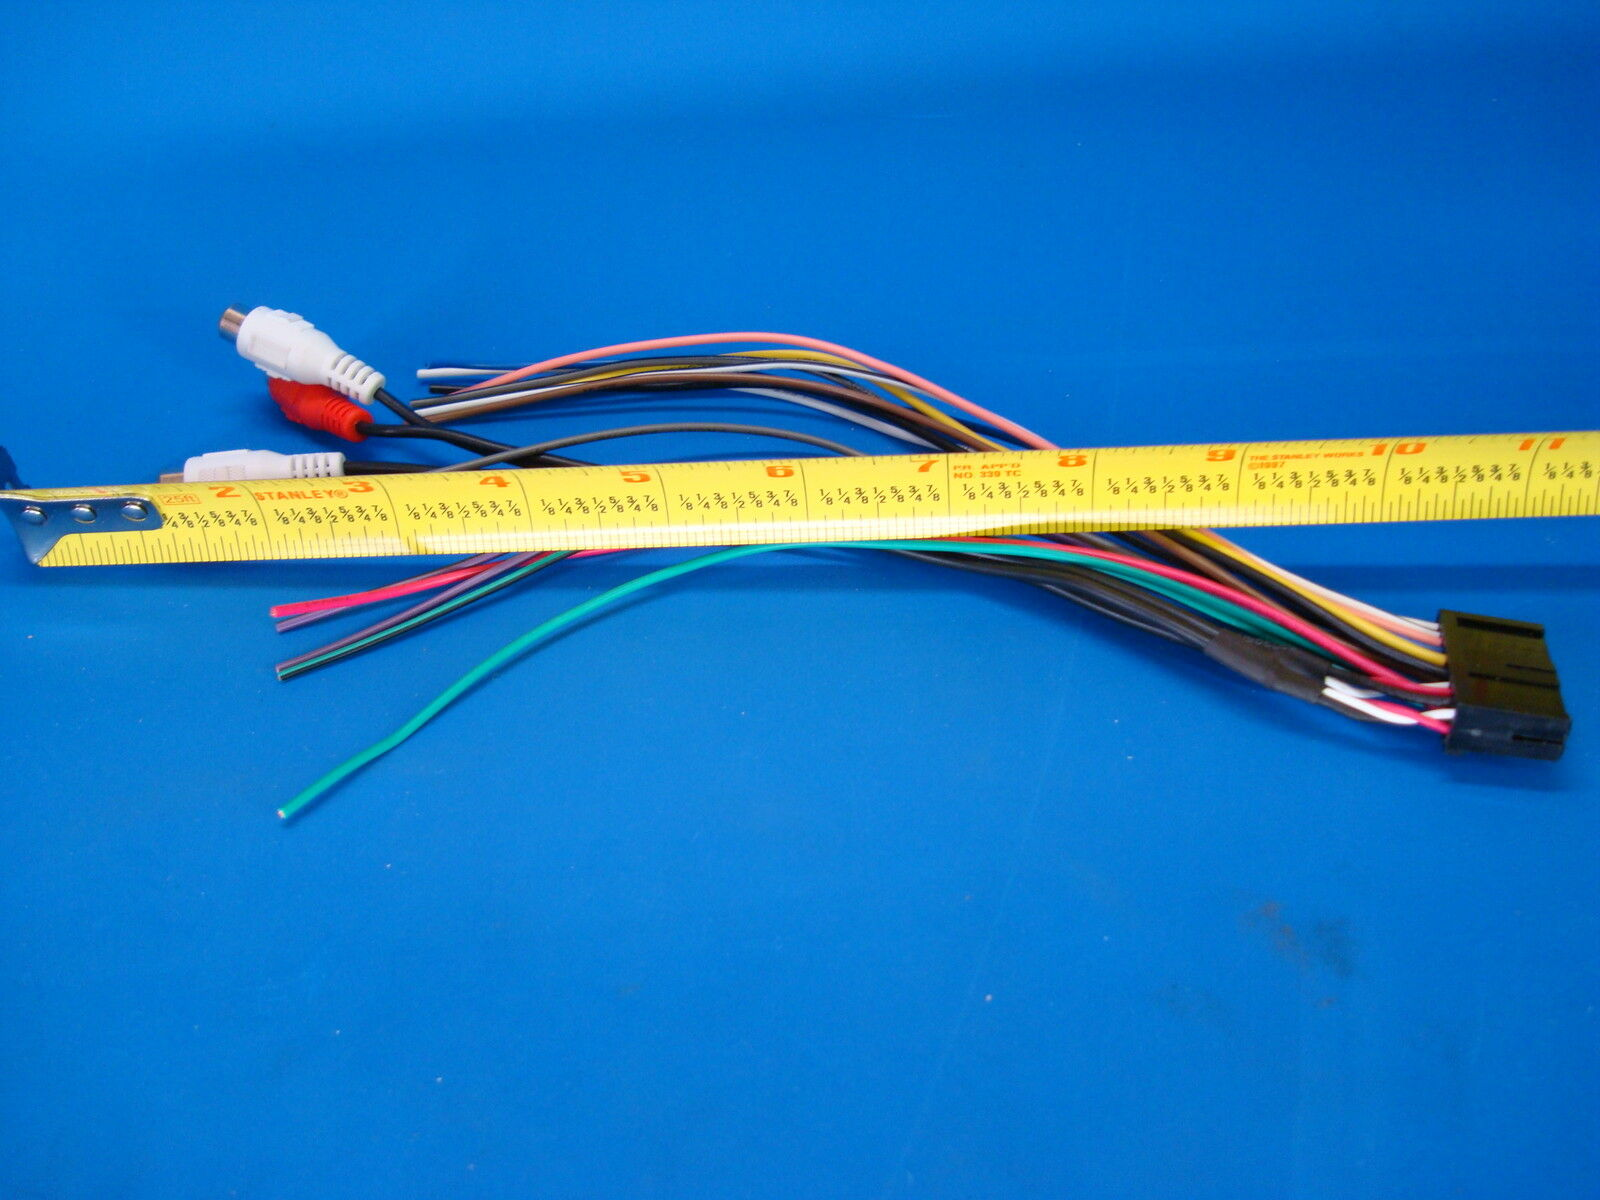 Dual Radio Power Plug Stereo Wire Harness 20pin Cd Mp3 Dvd Tv Wiring Diagram On Head Unit Xdvd8180 Us Seller For Sale